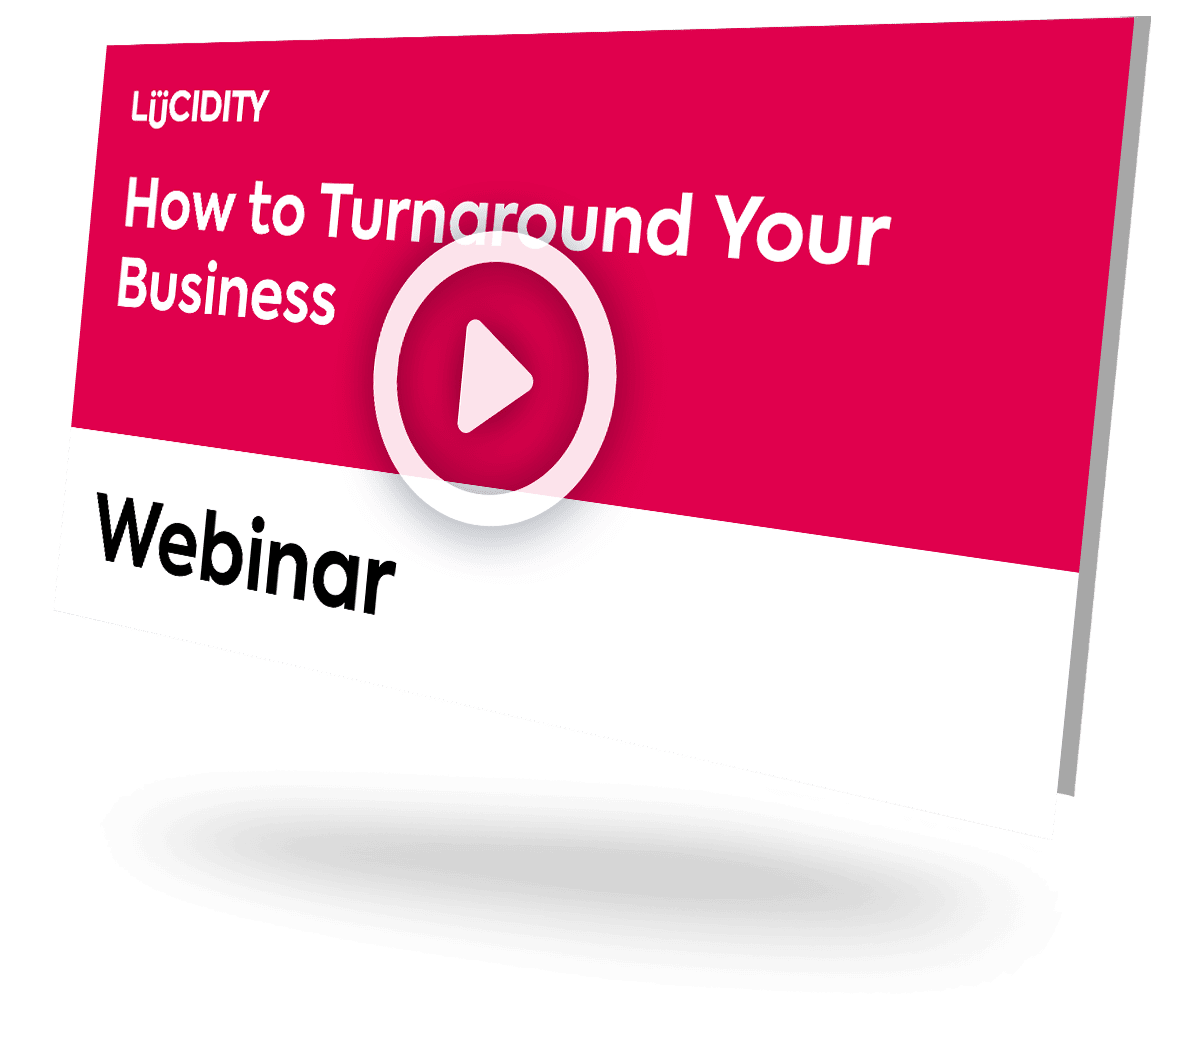 How to Turnaround Your Business